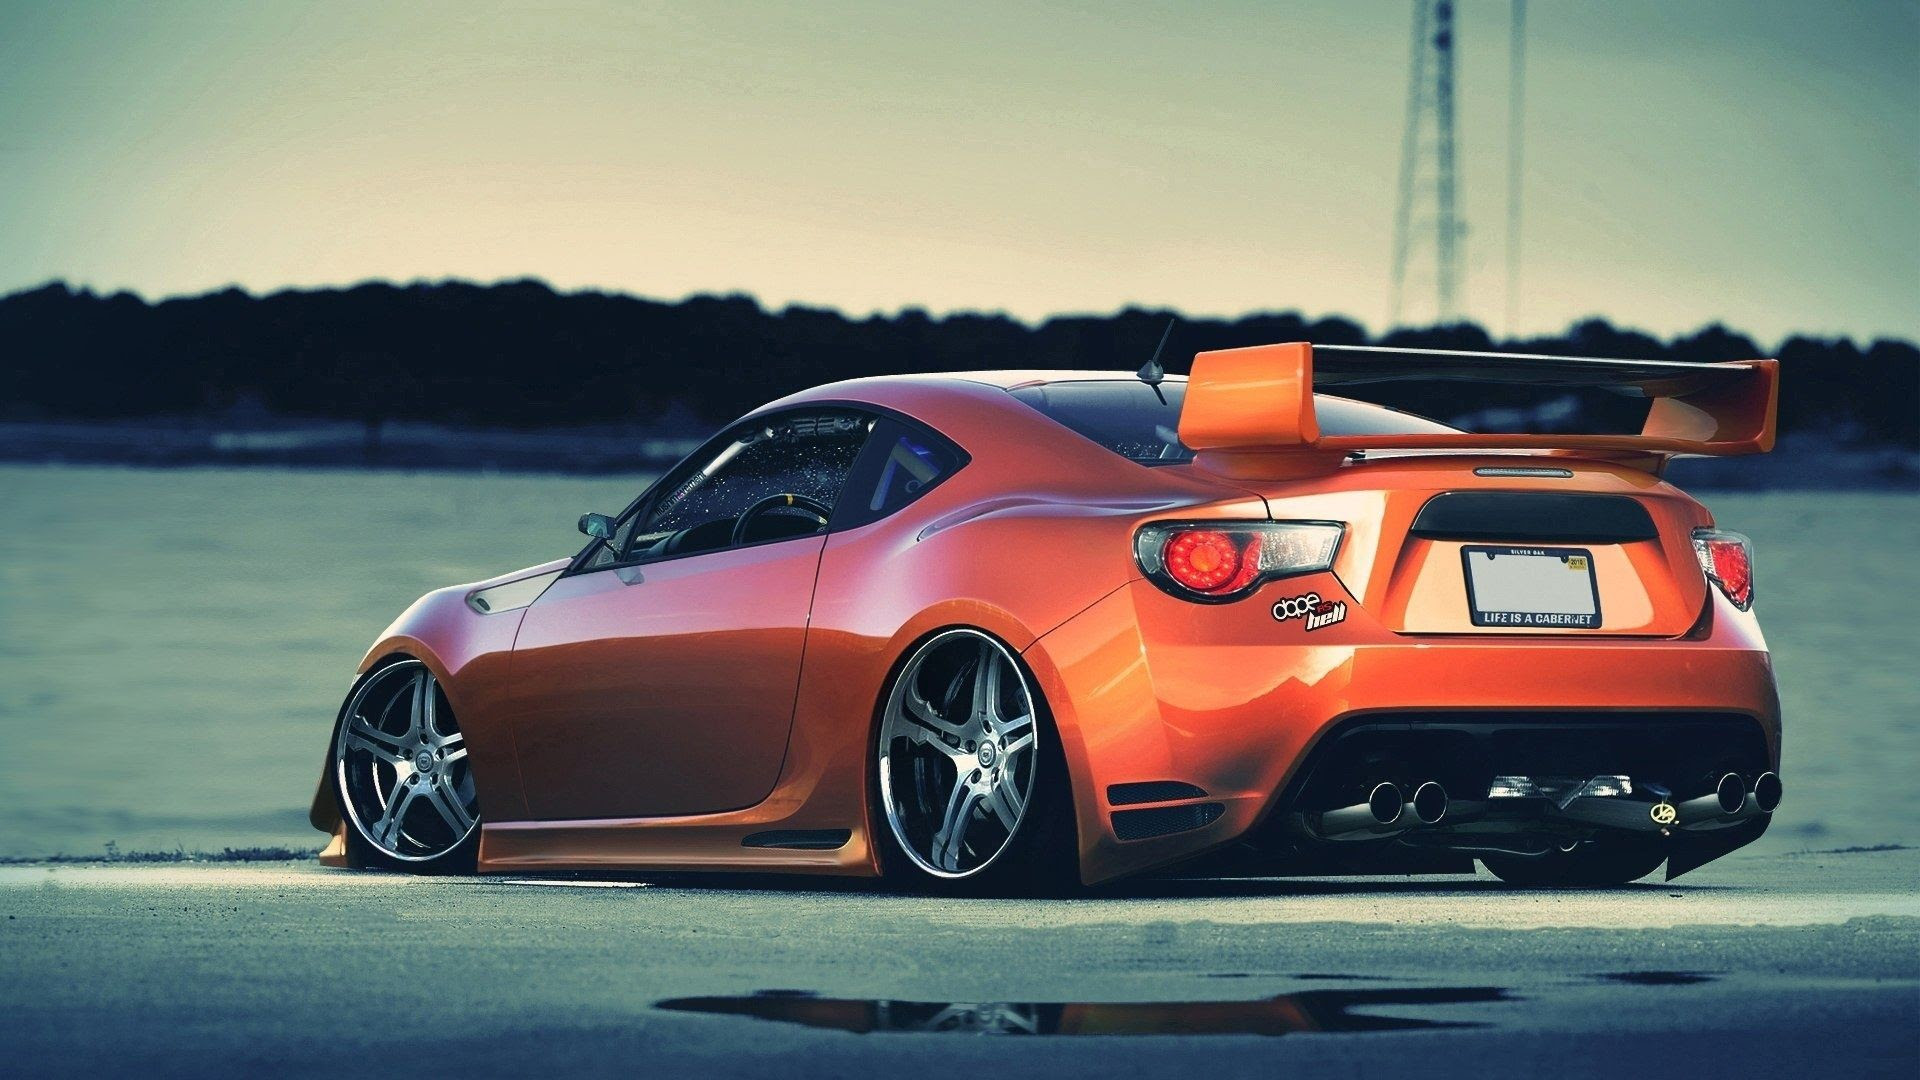 Tuned Cars Wallpapers 77+ images